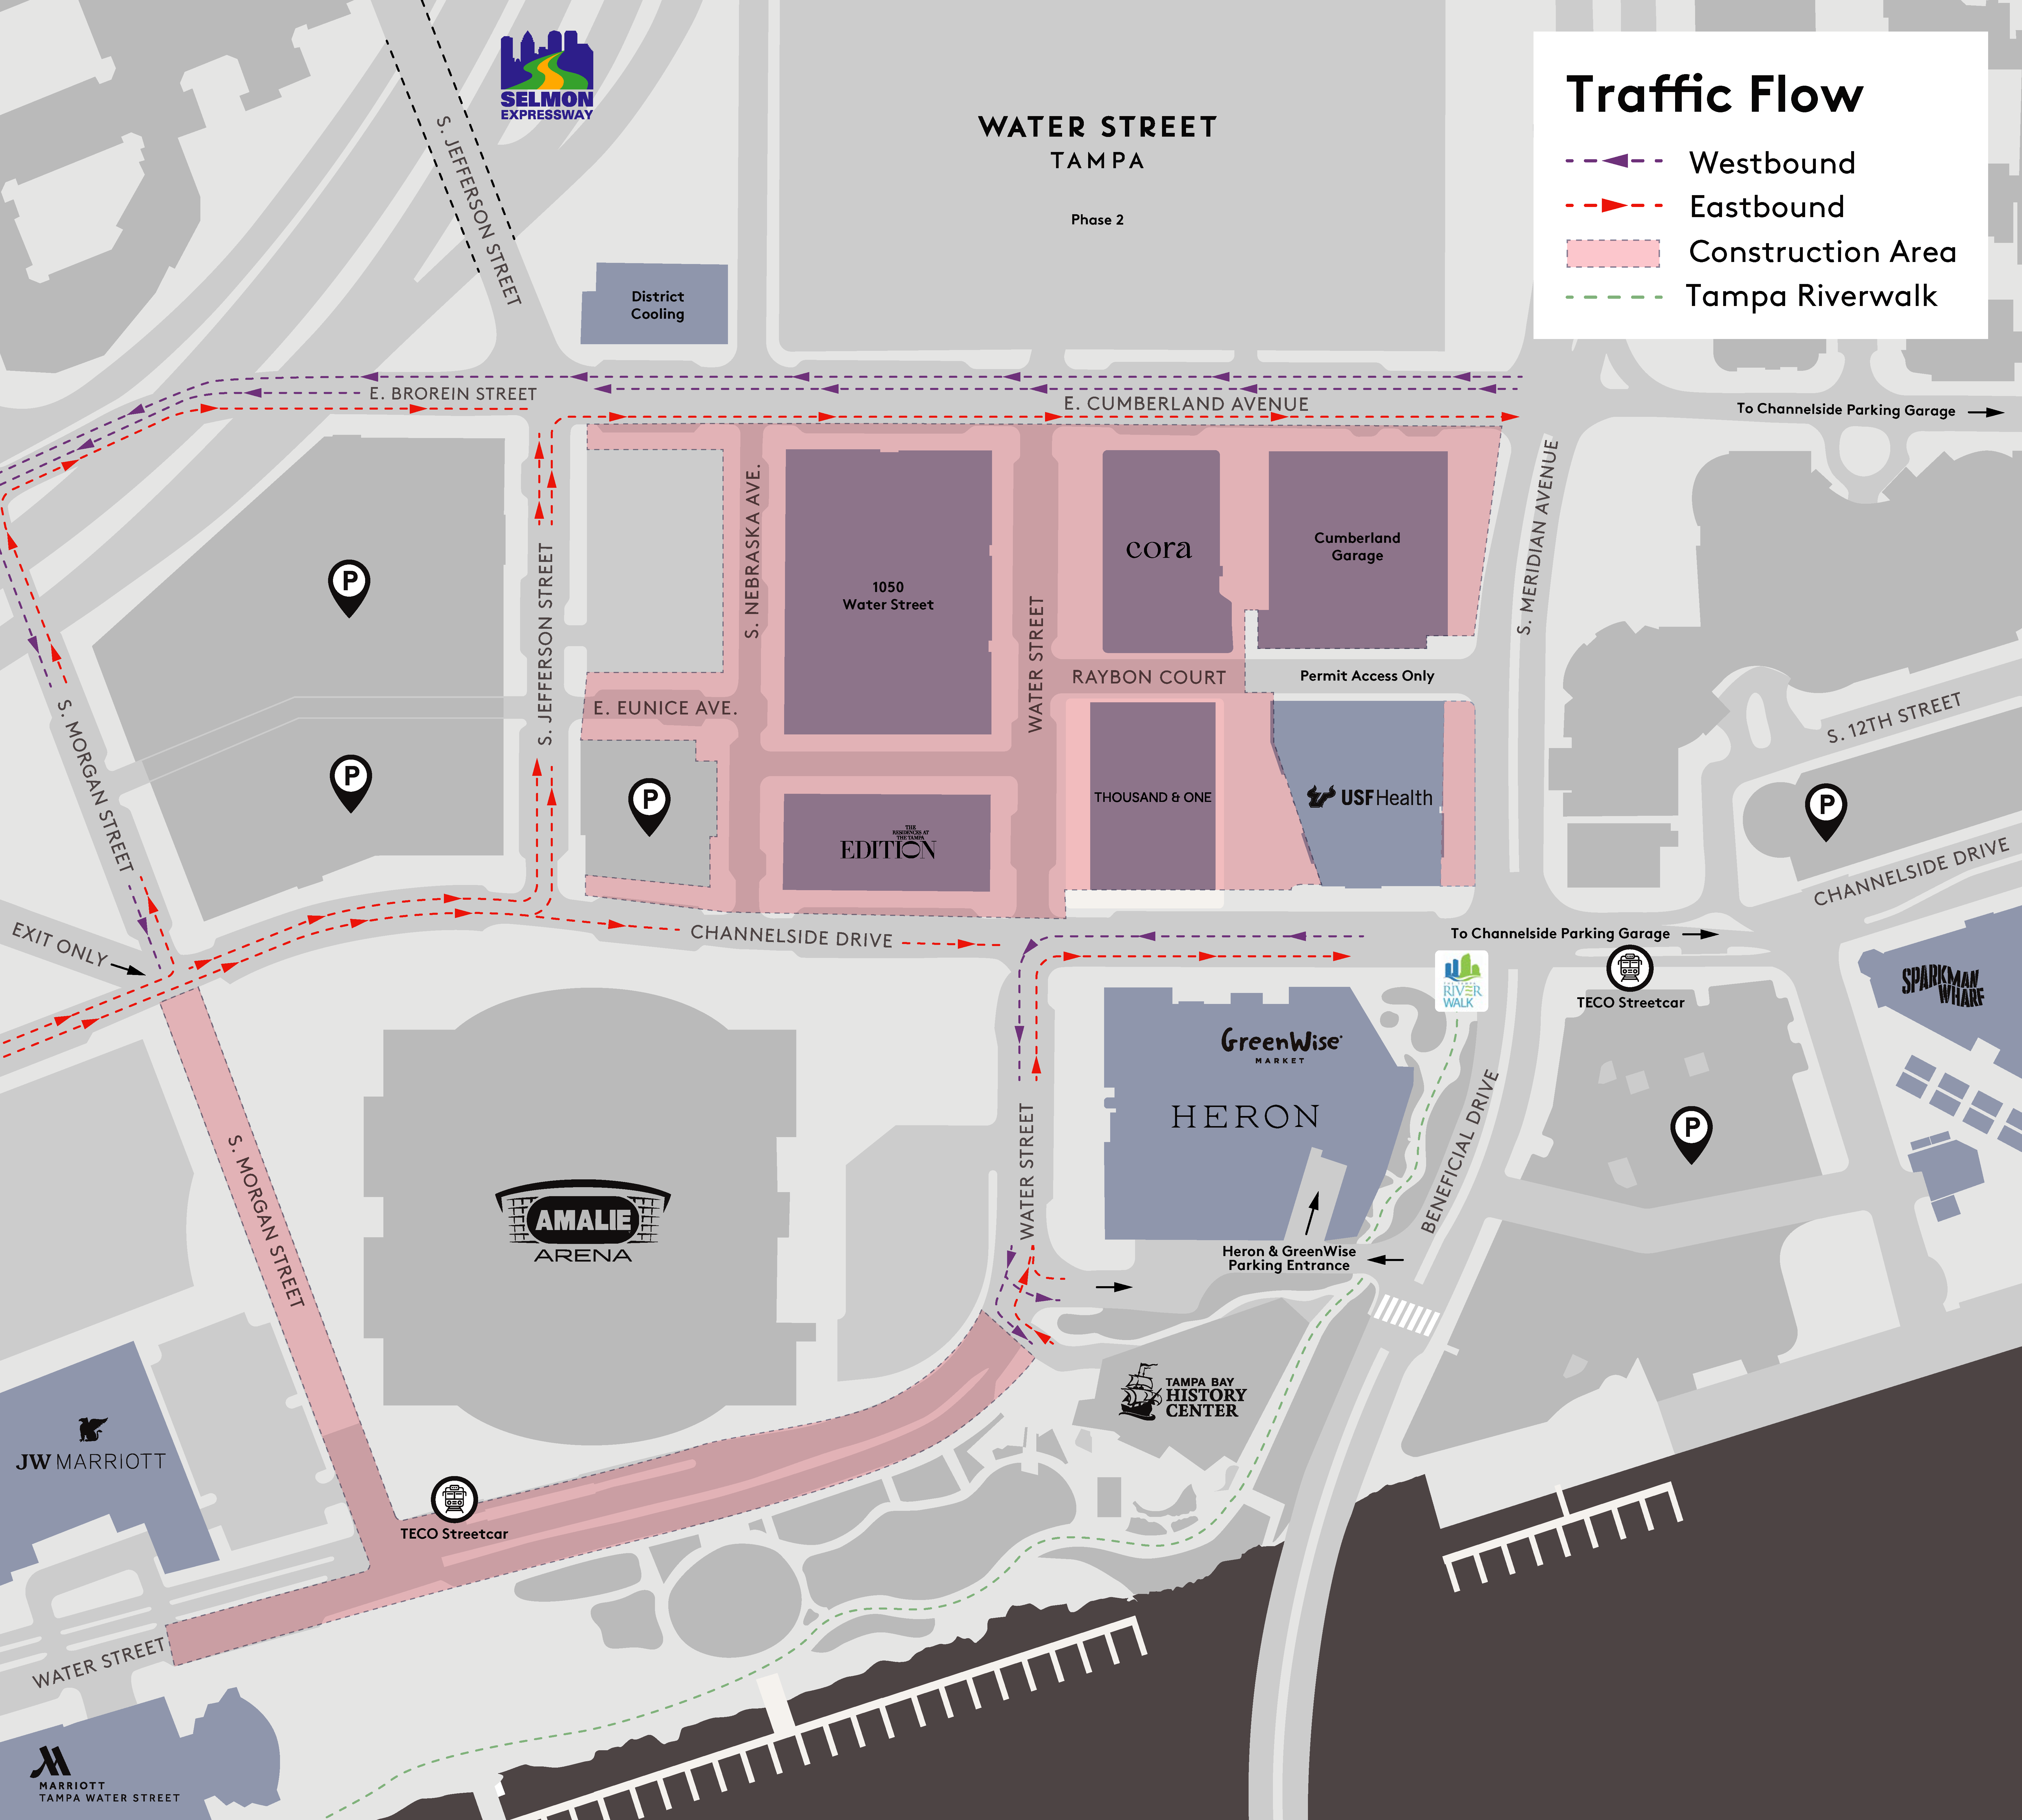 Map of closures and open lanes in the Water Street Tampa neighborhood